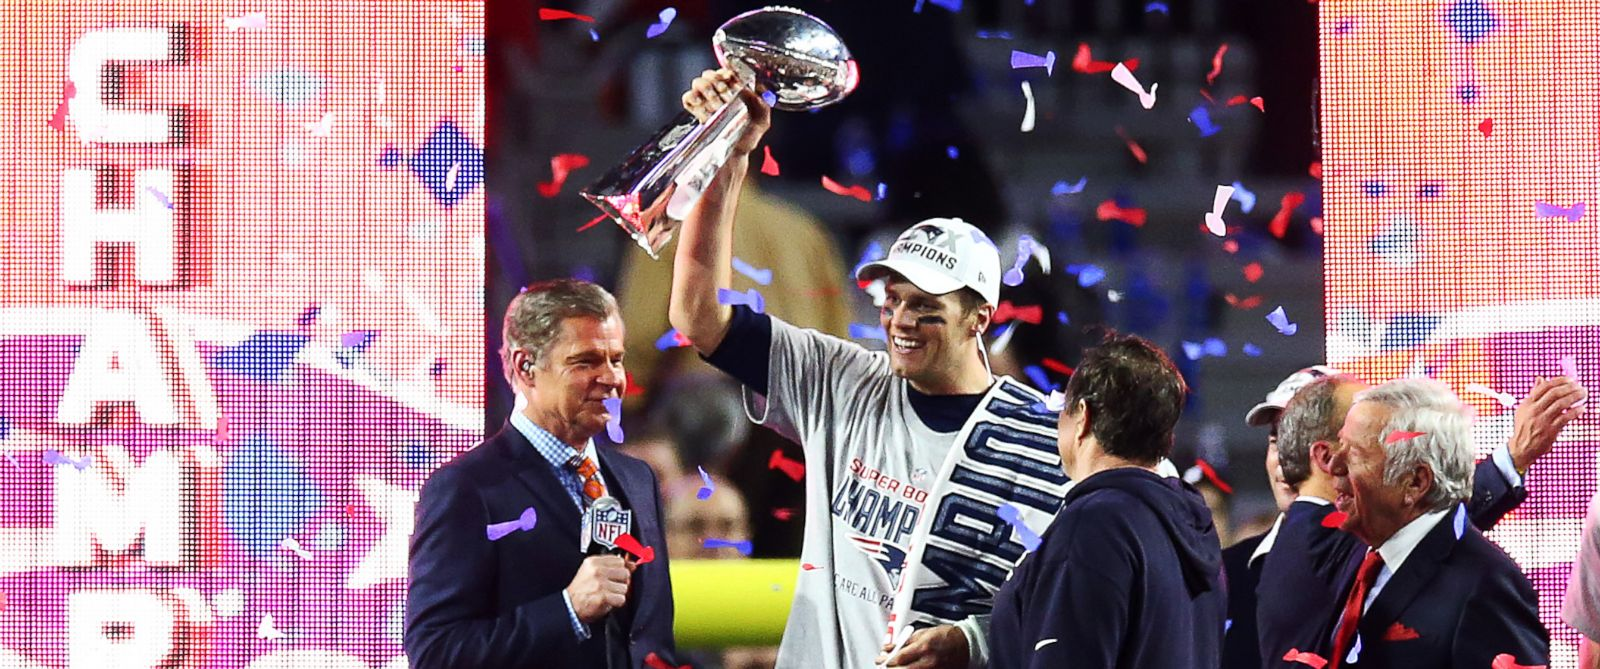 PHOTO: Tom Brady #12 of the New England Patriots holds the Vince Lombardi Tropy after winning Super Bowl XLIX over the Seattle Seahawks 28-24 at University of Phoenix Stadium on Feb. 1, 2015 in Glendale, Ariz.